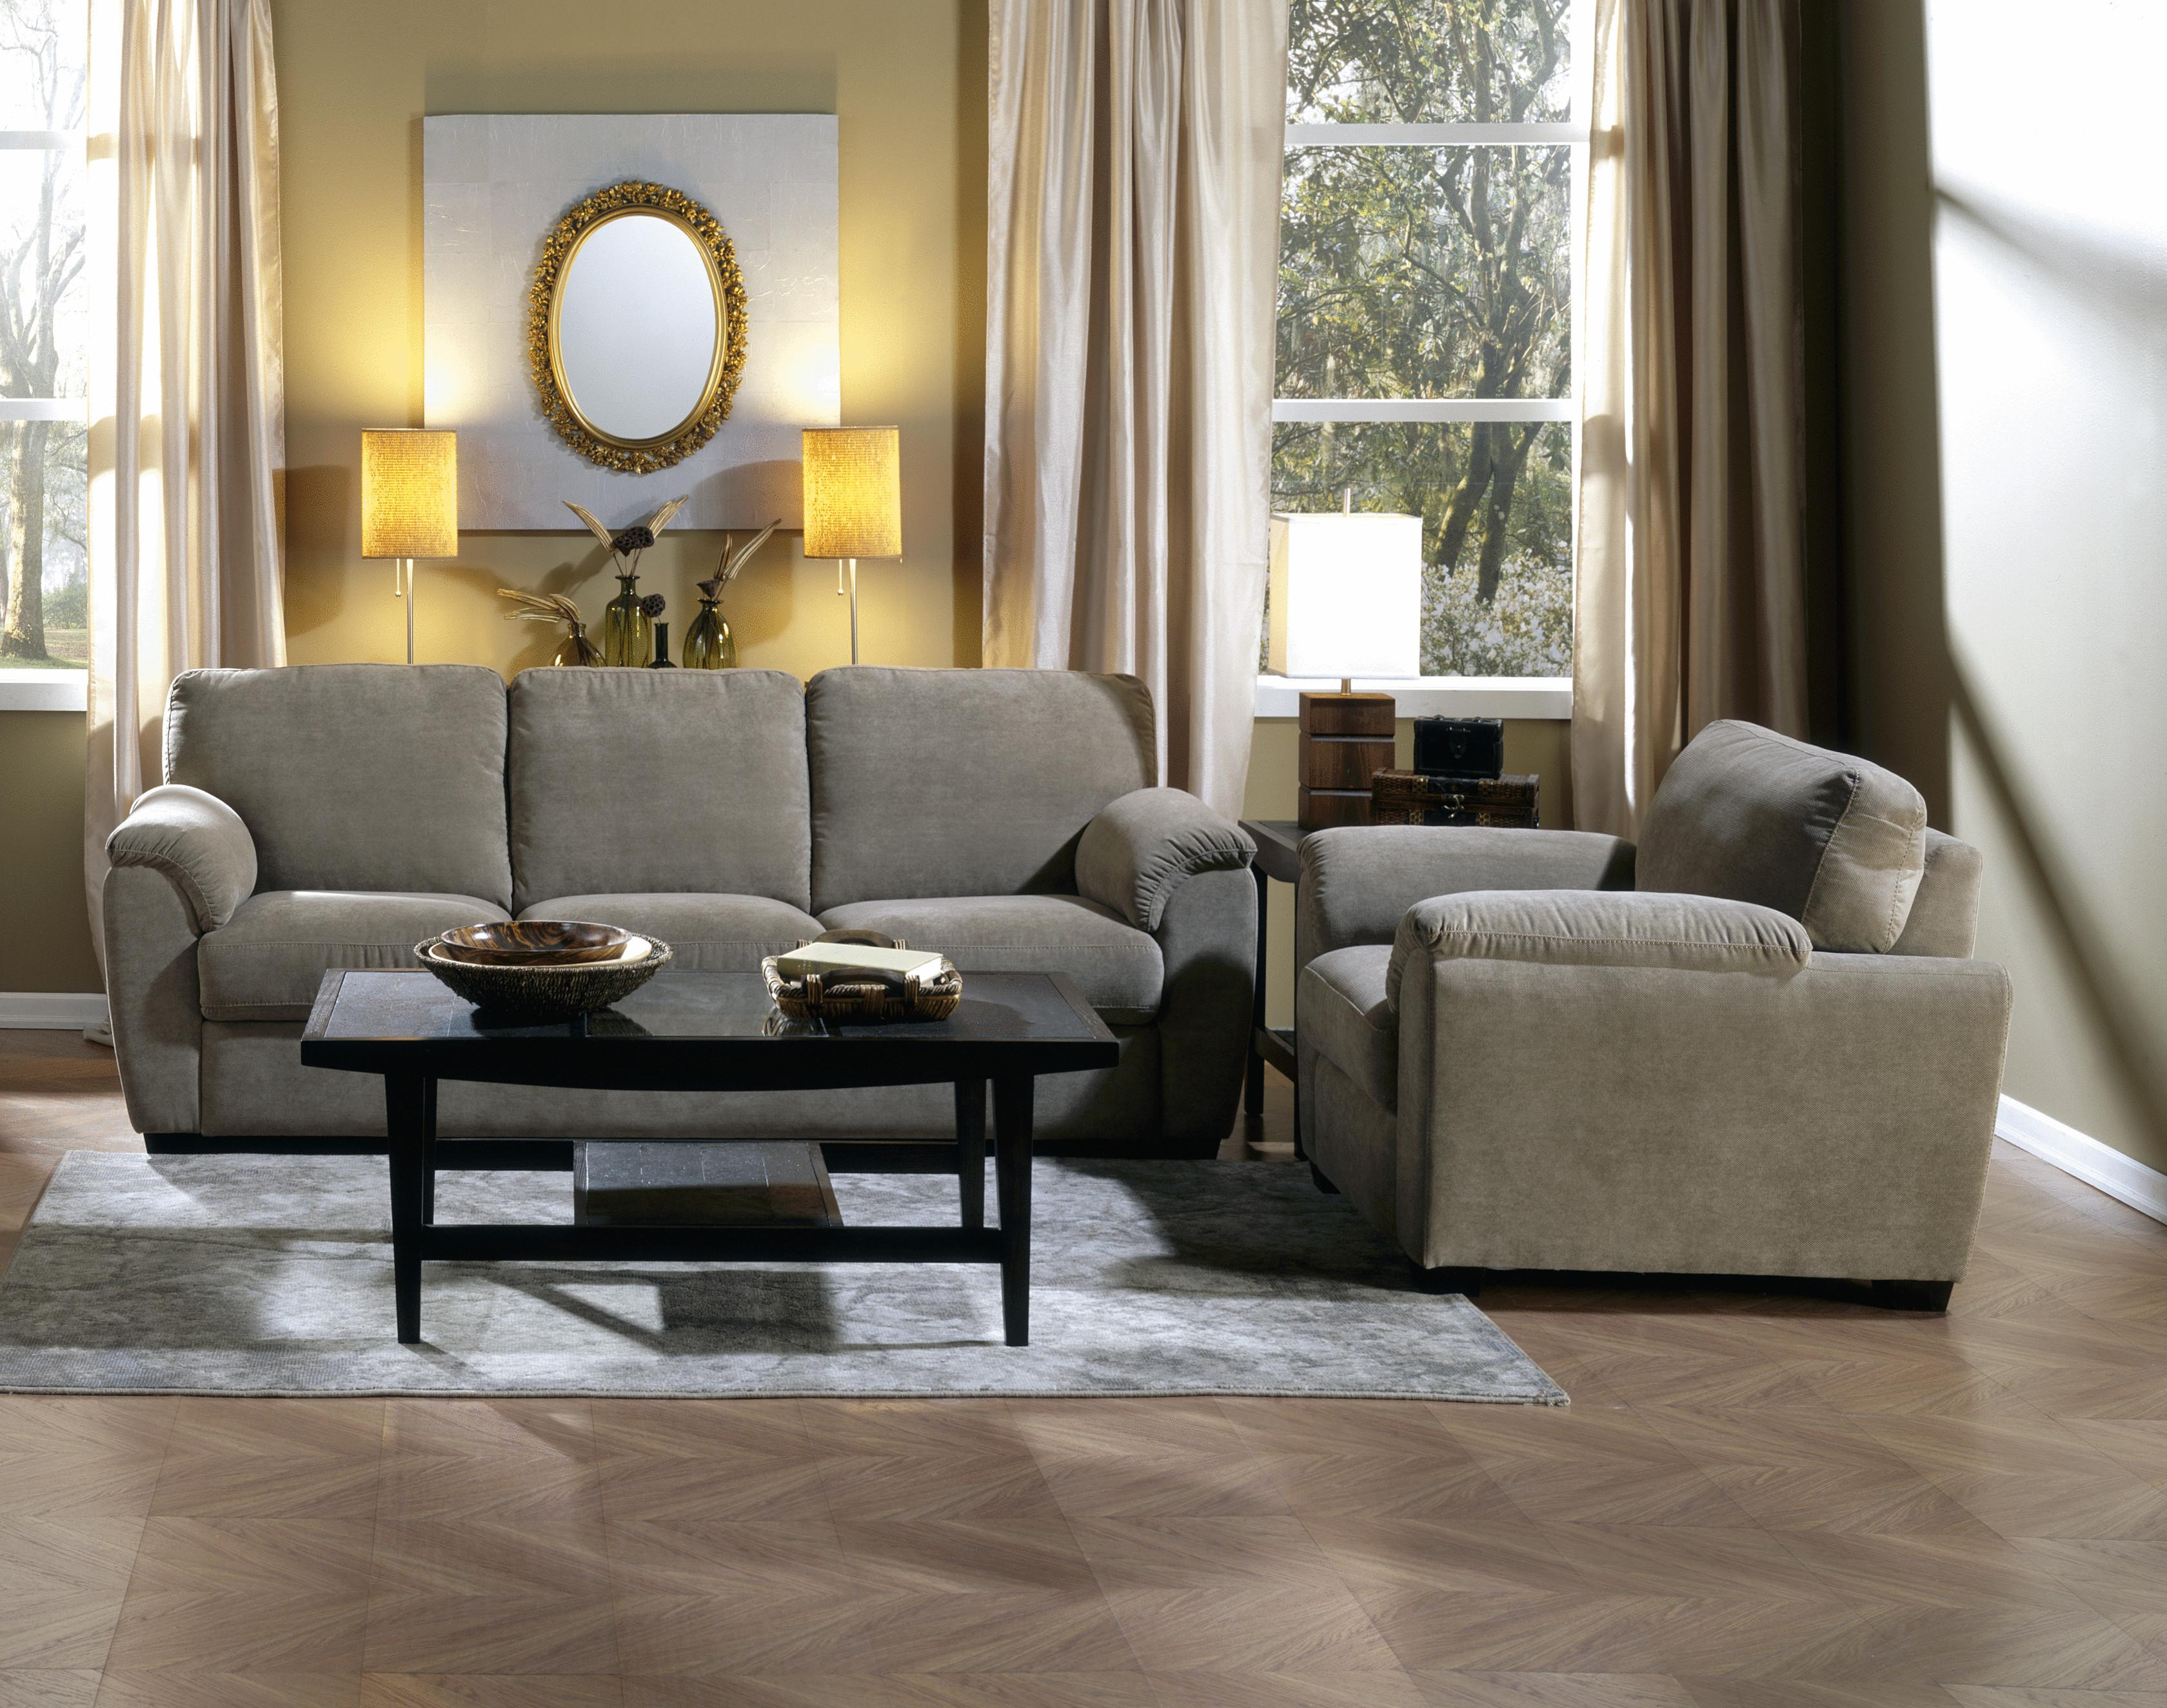 Lanza Stationary Living Room Group by Palliser at Jordan's Home Furnishings